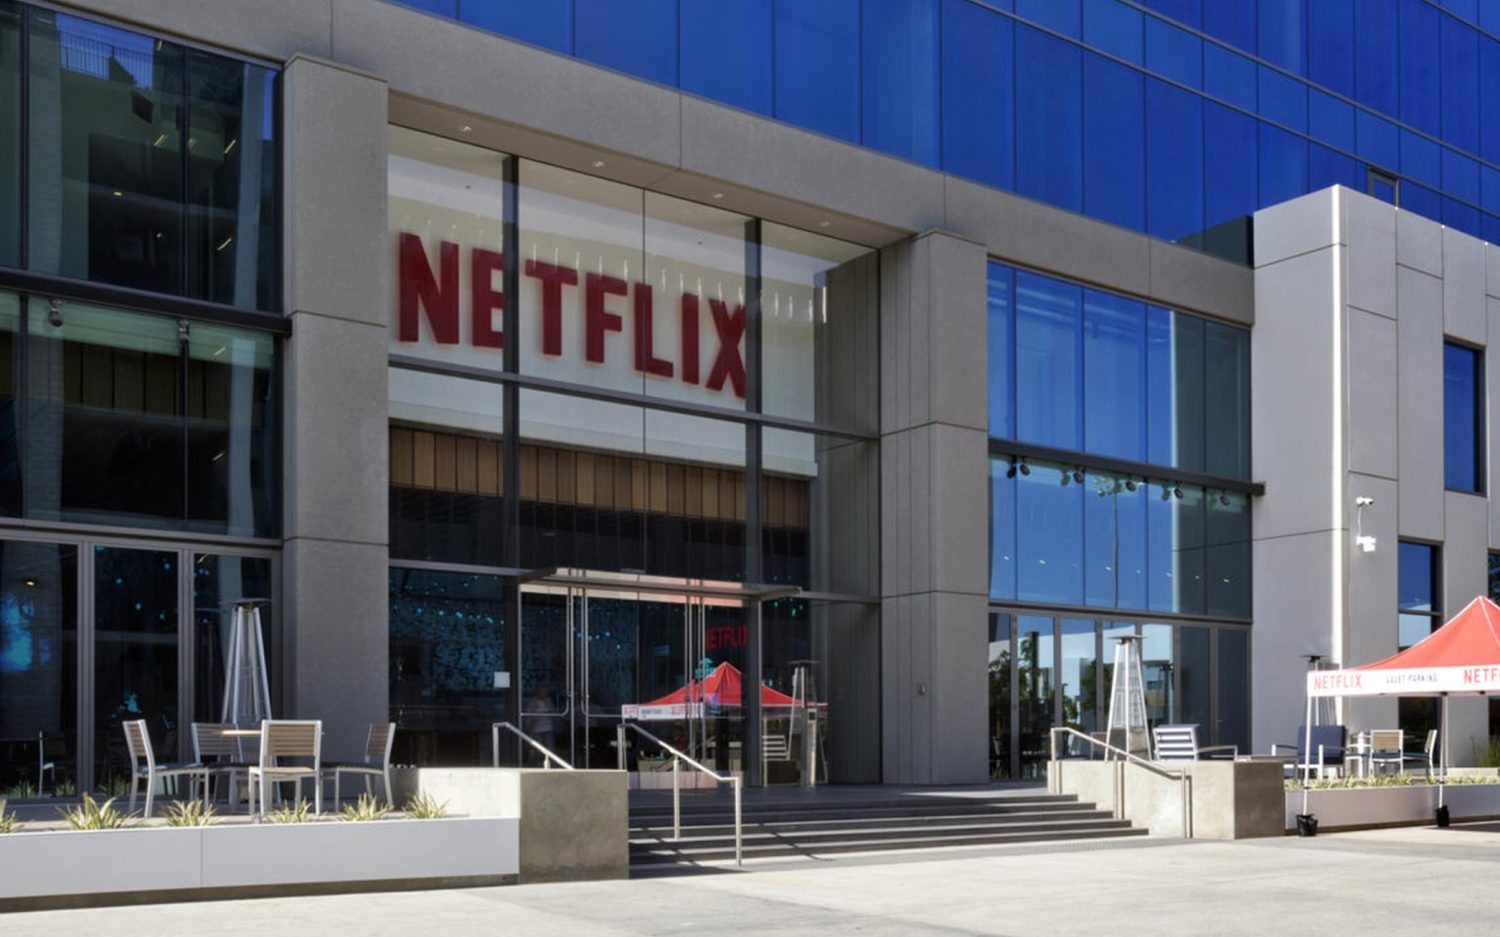 Real-world consequences for Netflix